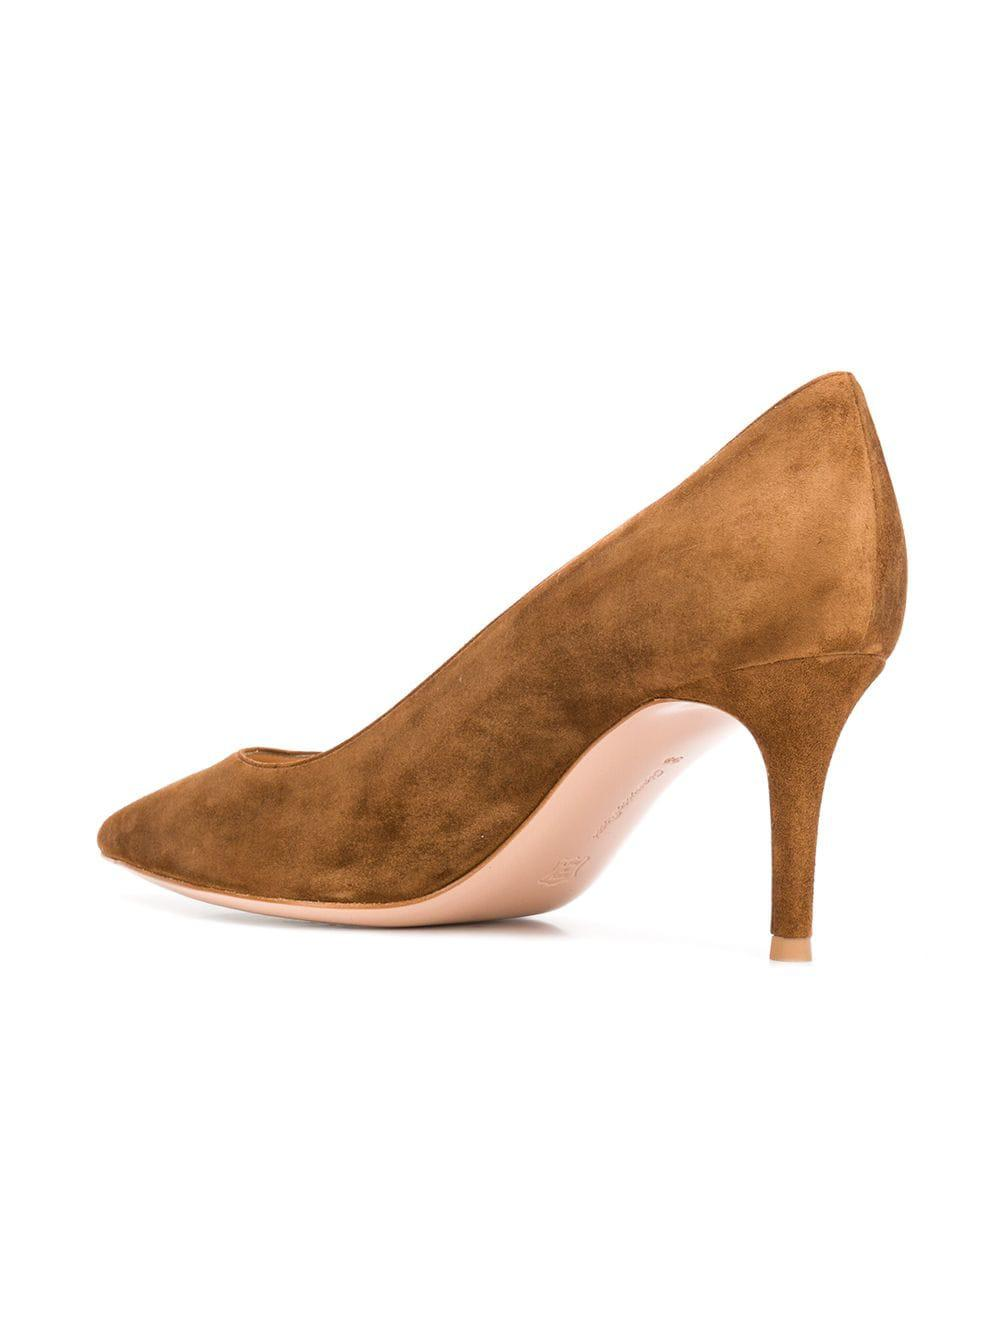 610a1f8ec98b Gianvito Rossi - Brown Pointed Pumps - Lyst. View fullscreen